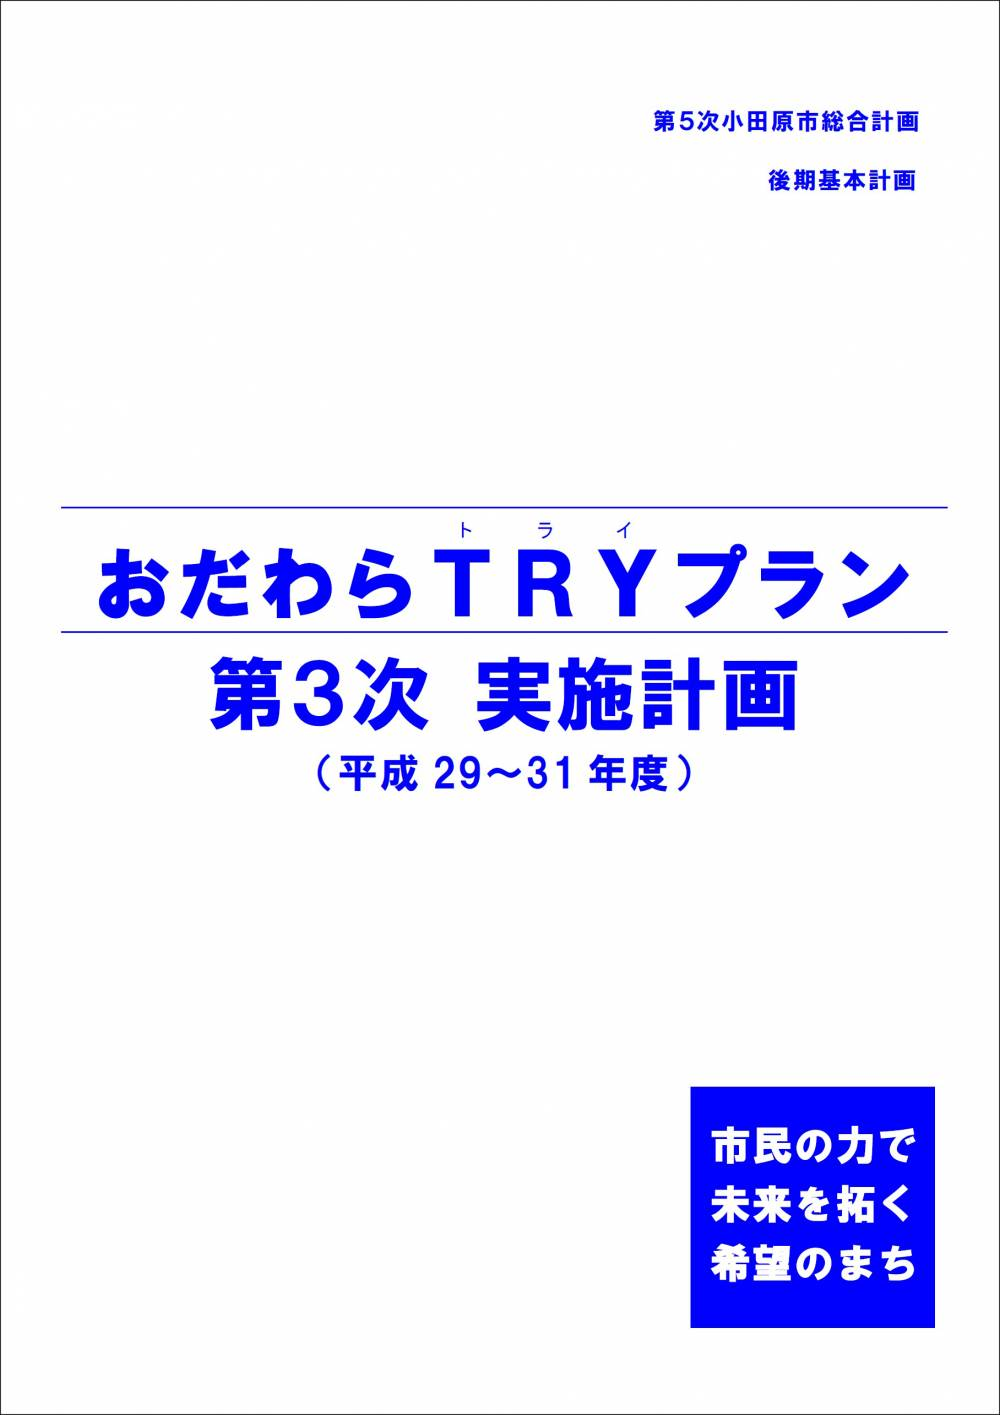 Cover of execution plan of odawara TRY plan